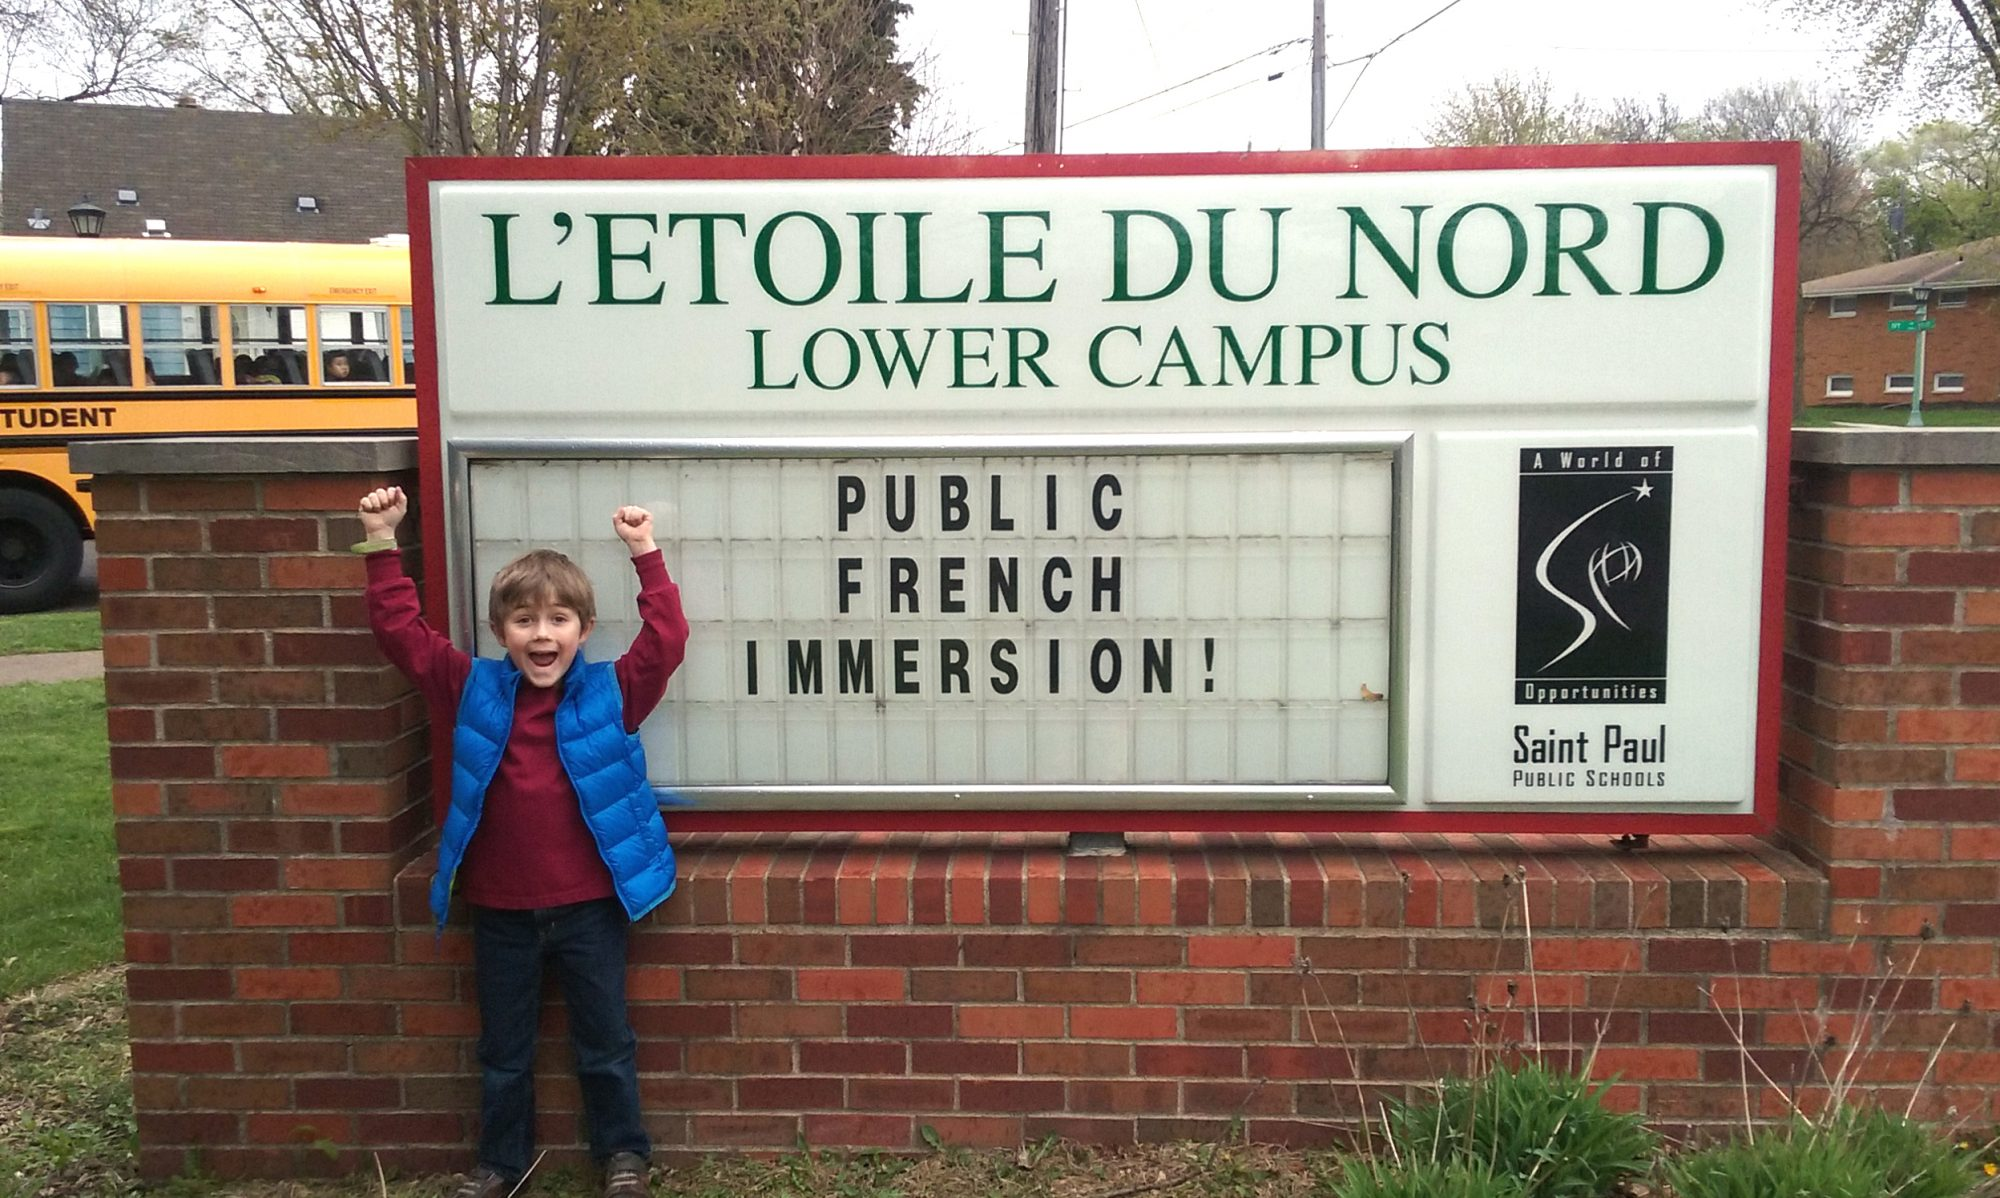 L'Etoile du Nord French Immersion